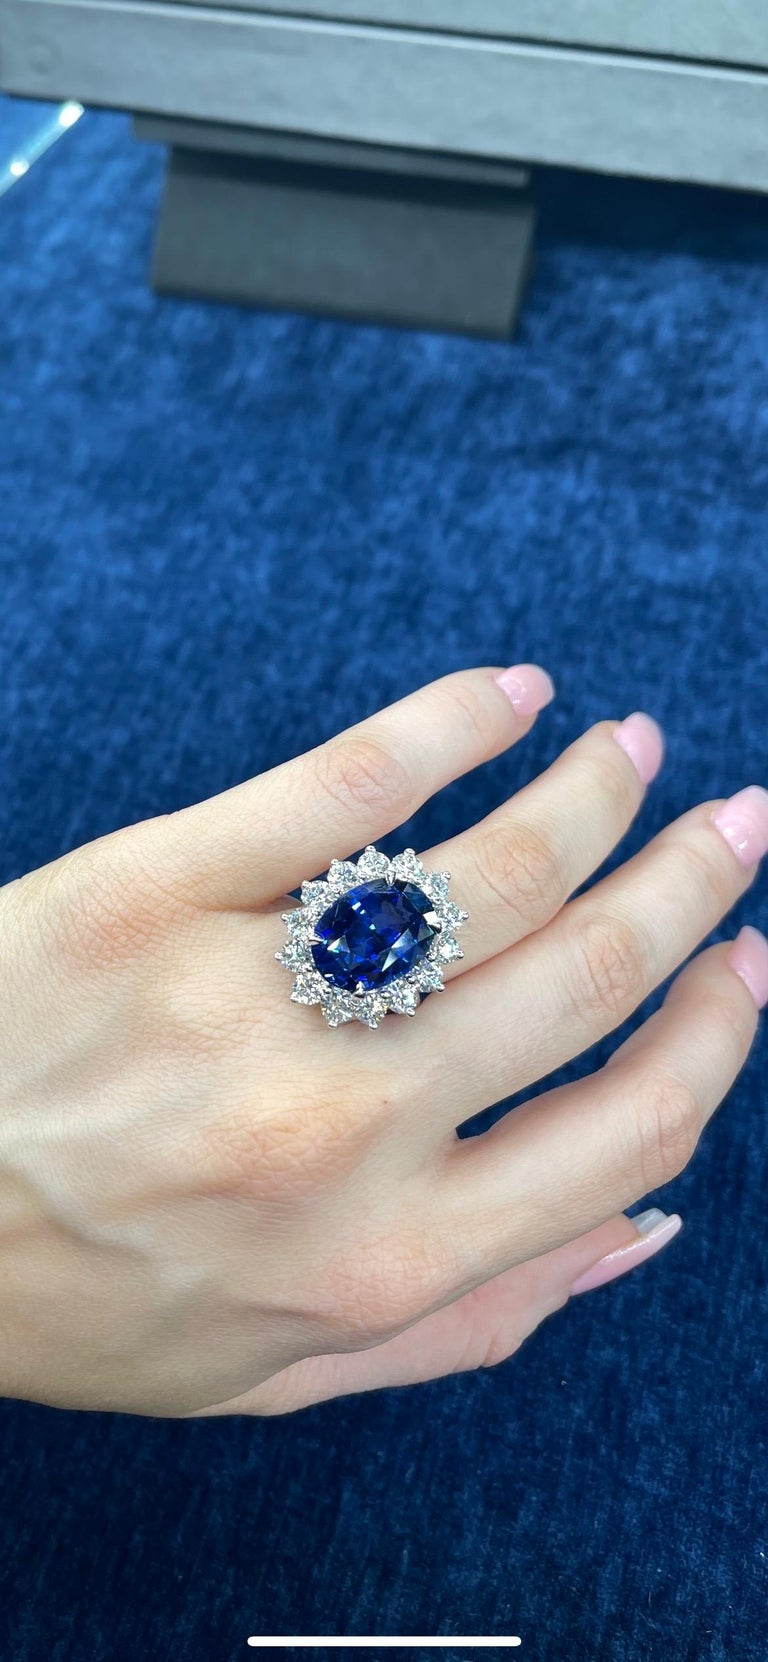 Princess Diana Inspired GIA Certified Sapphire Diamond Ring 15.31 Carats F VS For Sale 7